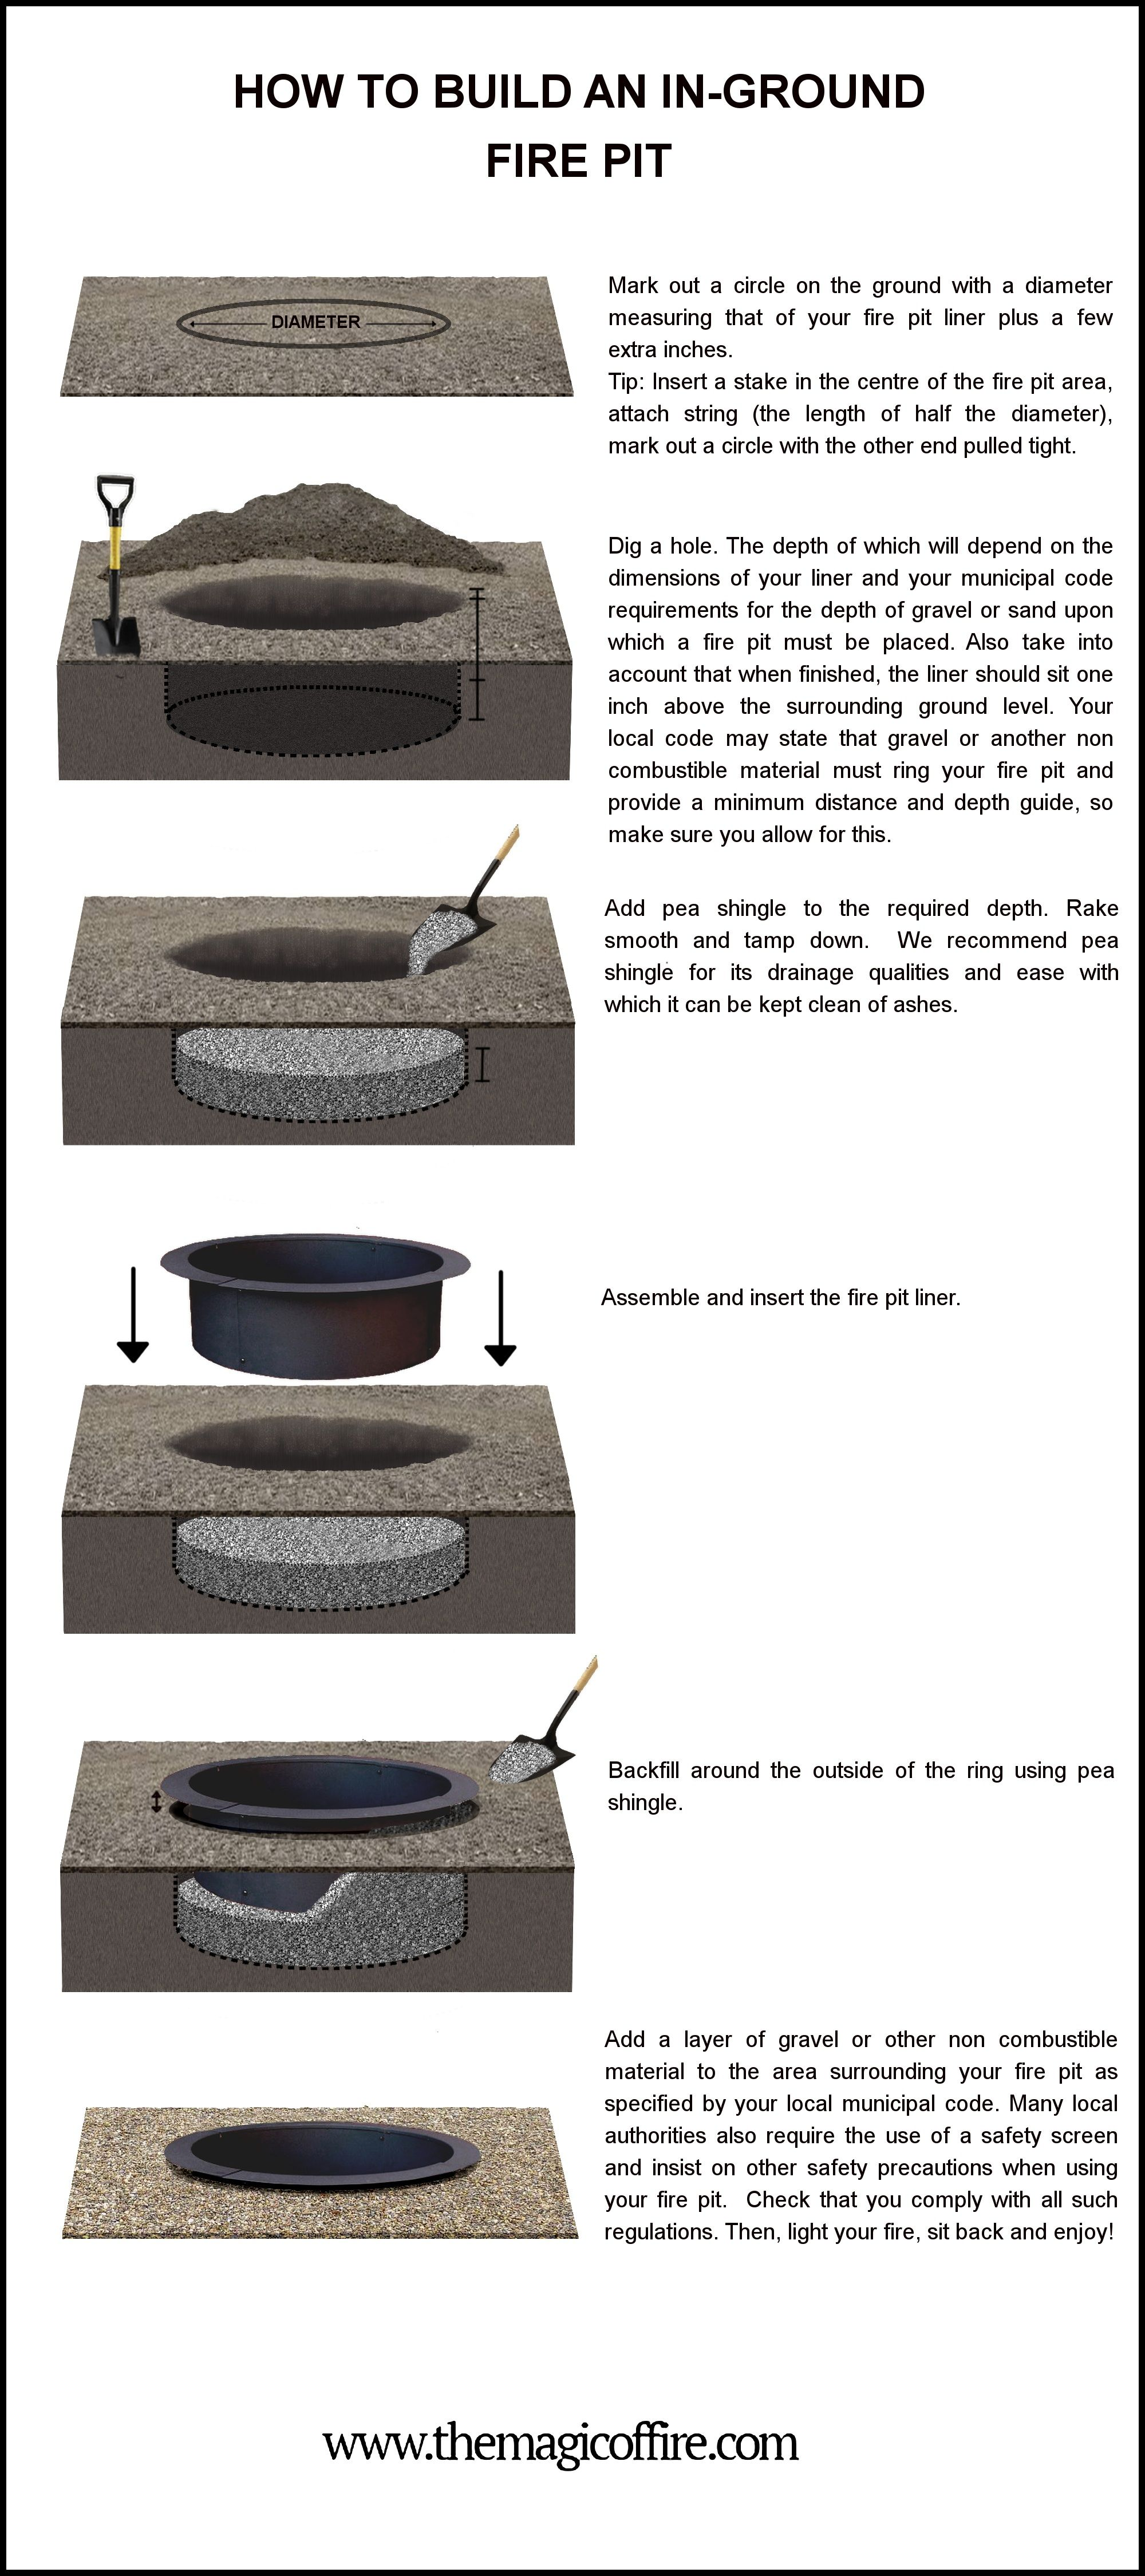 A Step By Step Guide On How To Build An In Ground Fire Pit Using A Steel Fire Pit Liner For More Information In Ground Fire Pit Fire Pit Liner Fire Pit